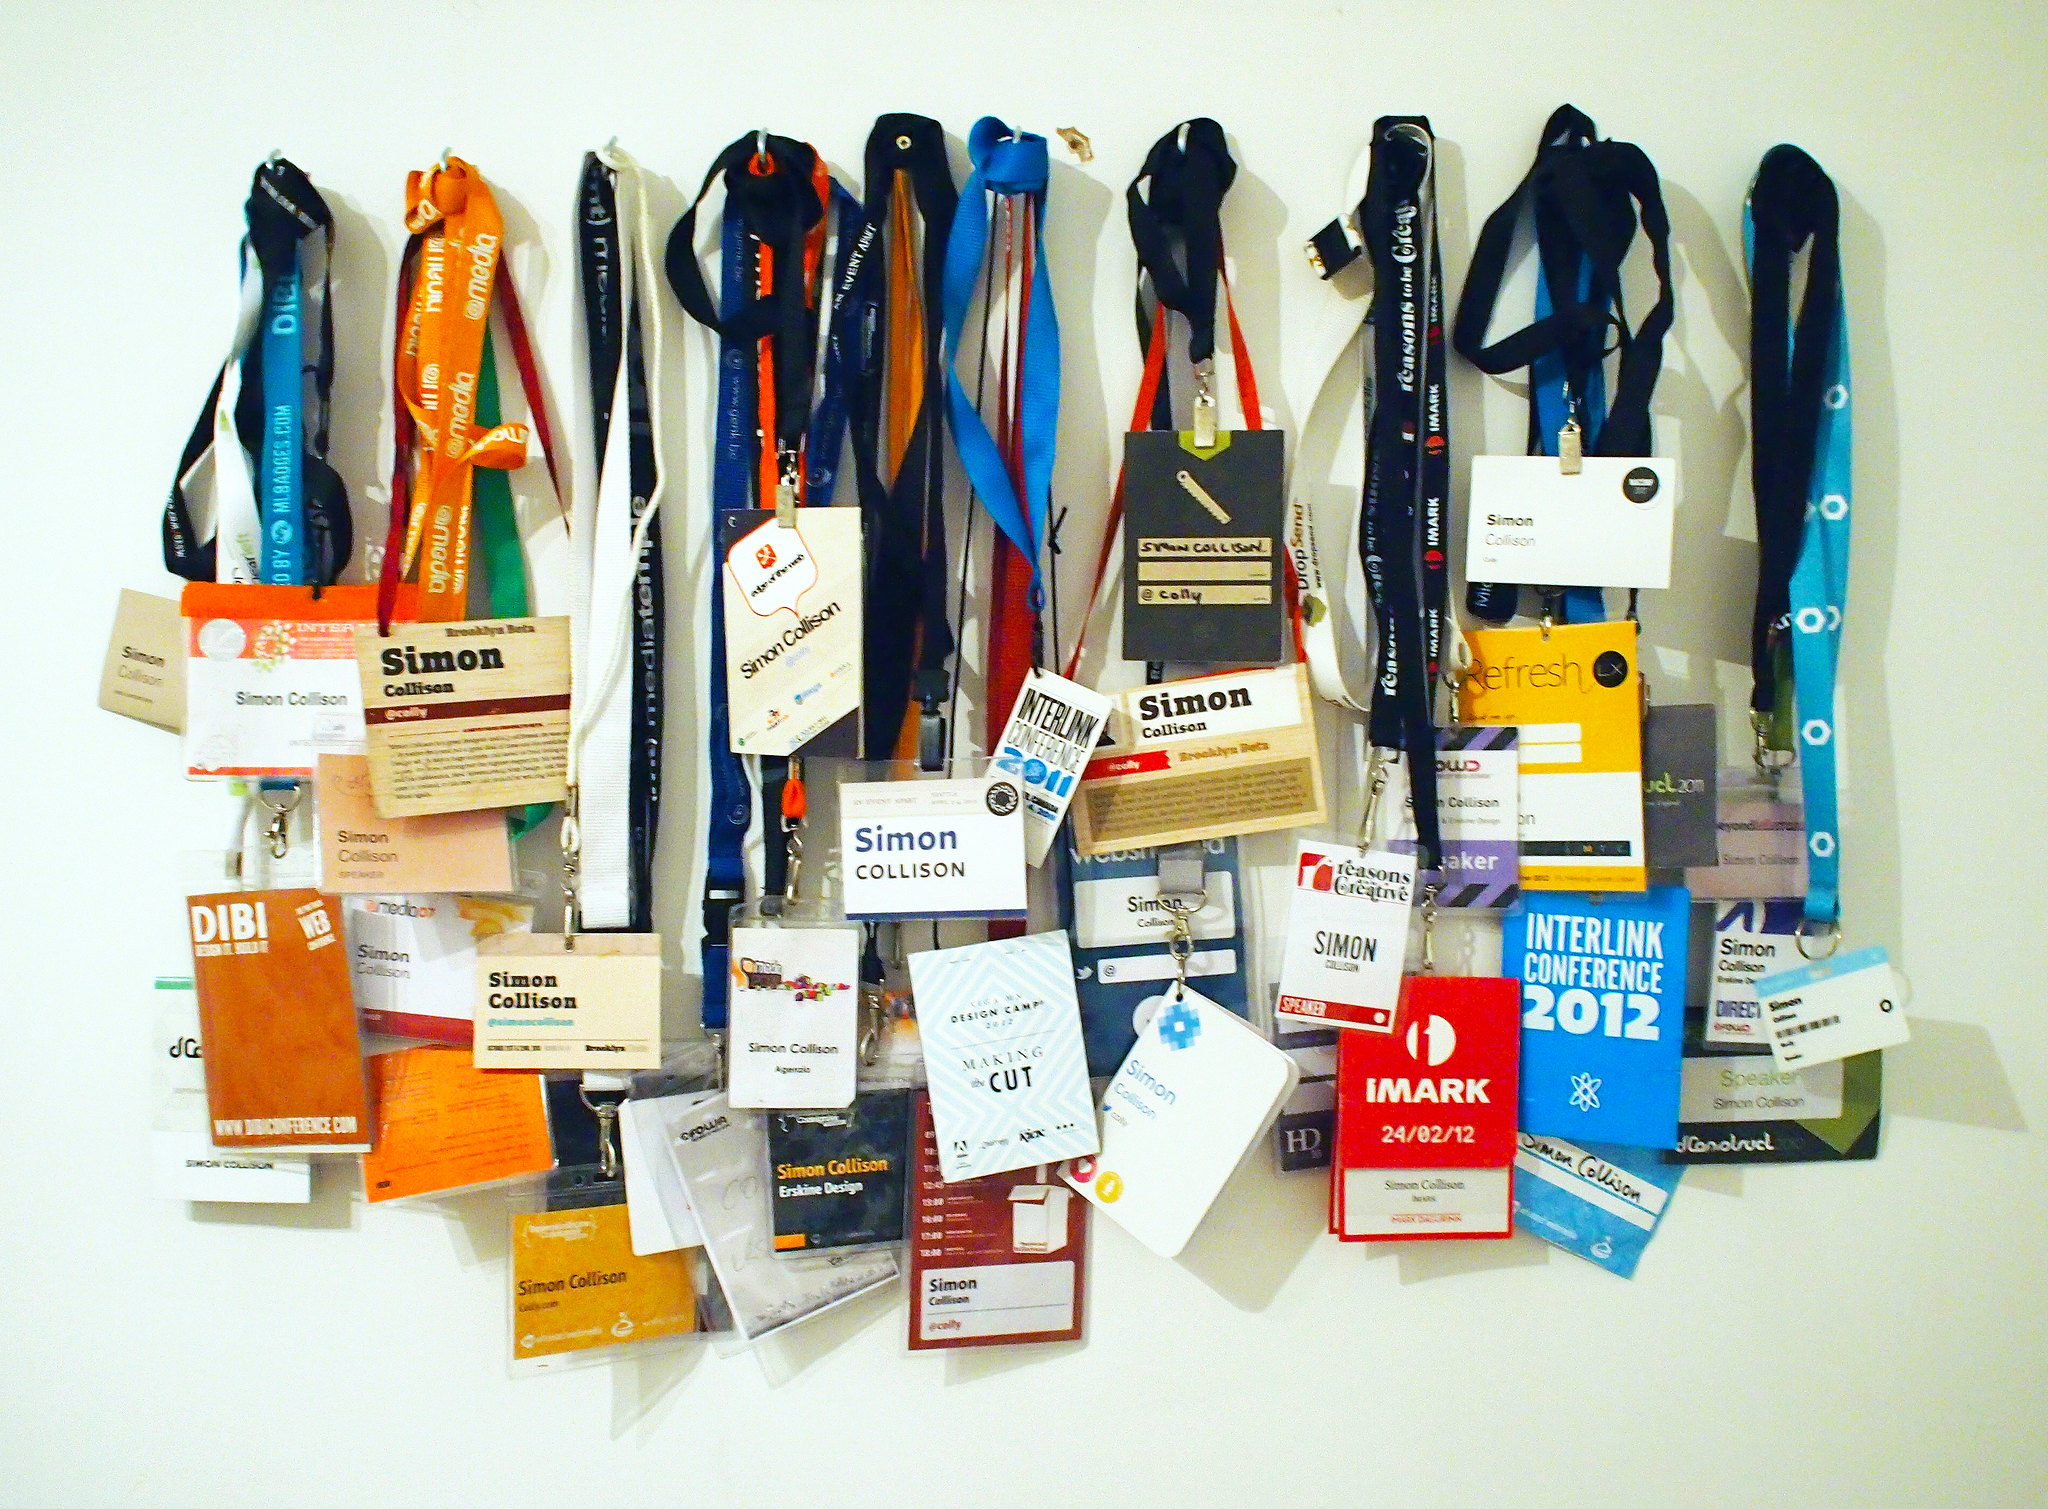 A line up of many of the badges given to conference attendees.